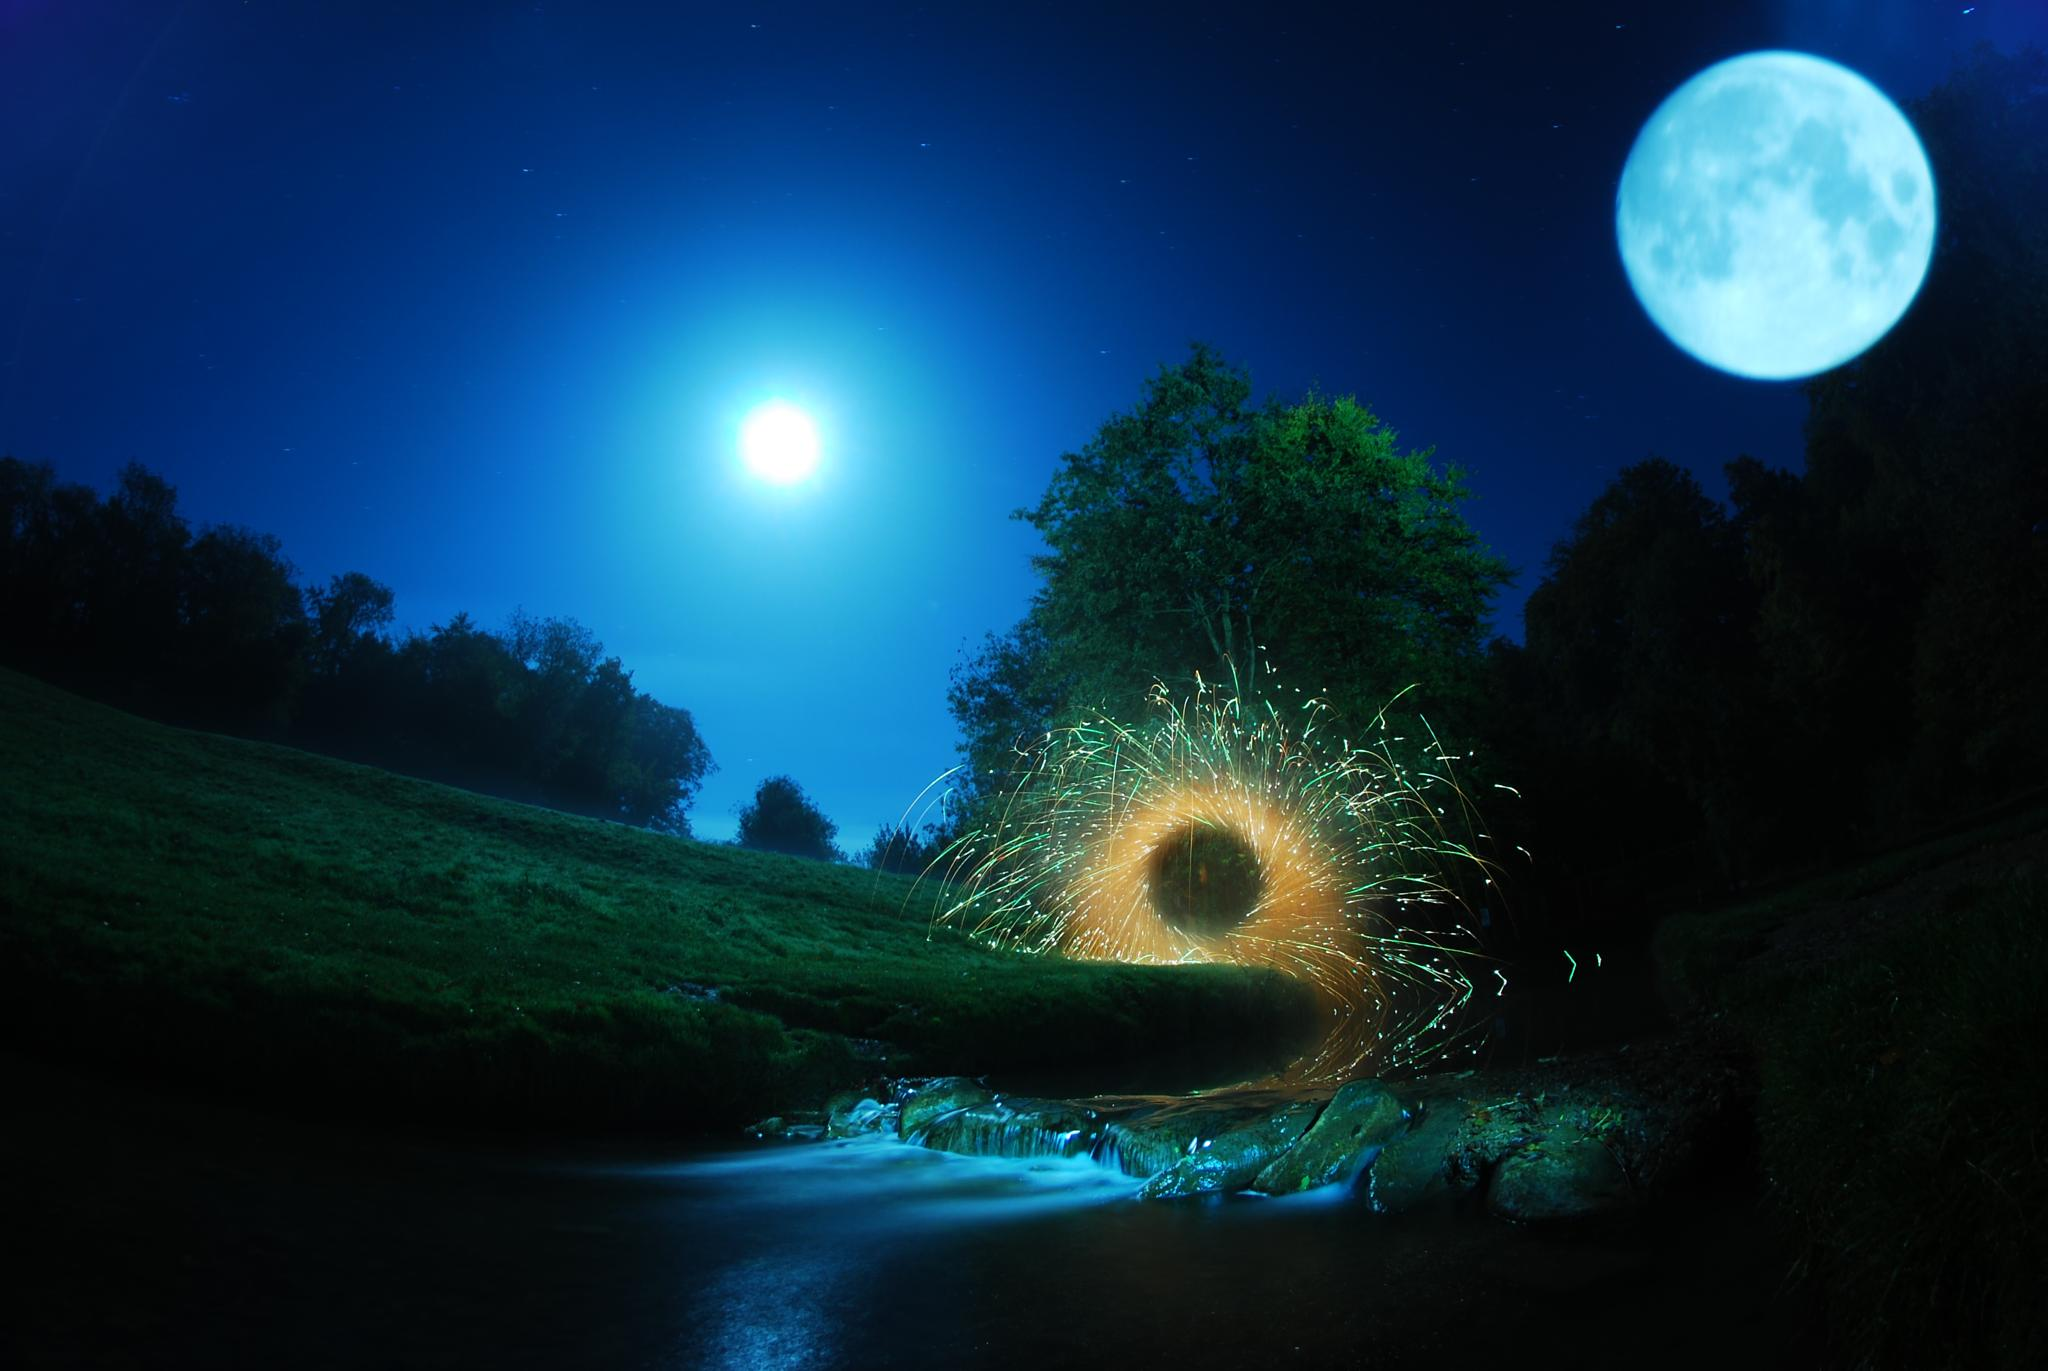 Hubbards hills fountain spin and the moon by JamesdeLunaLightpainting